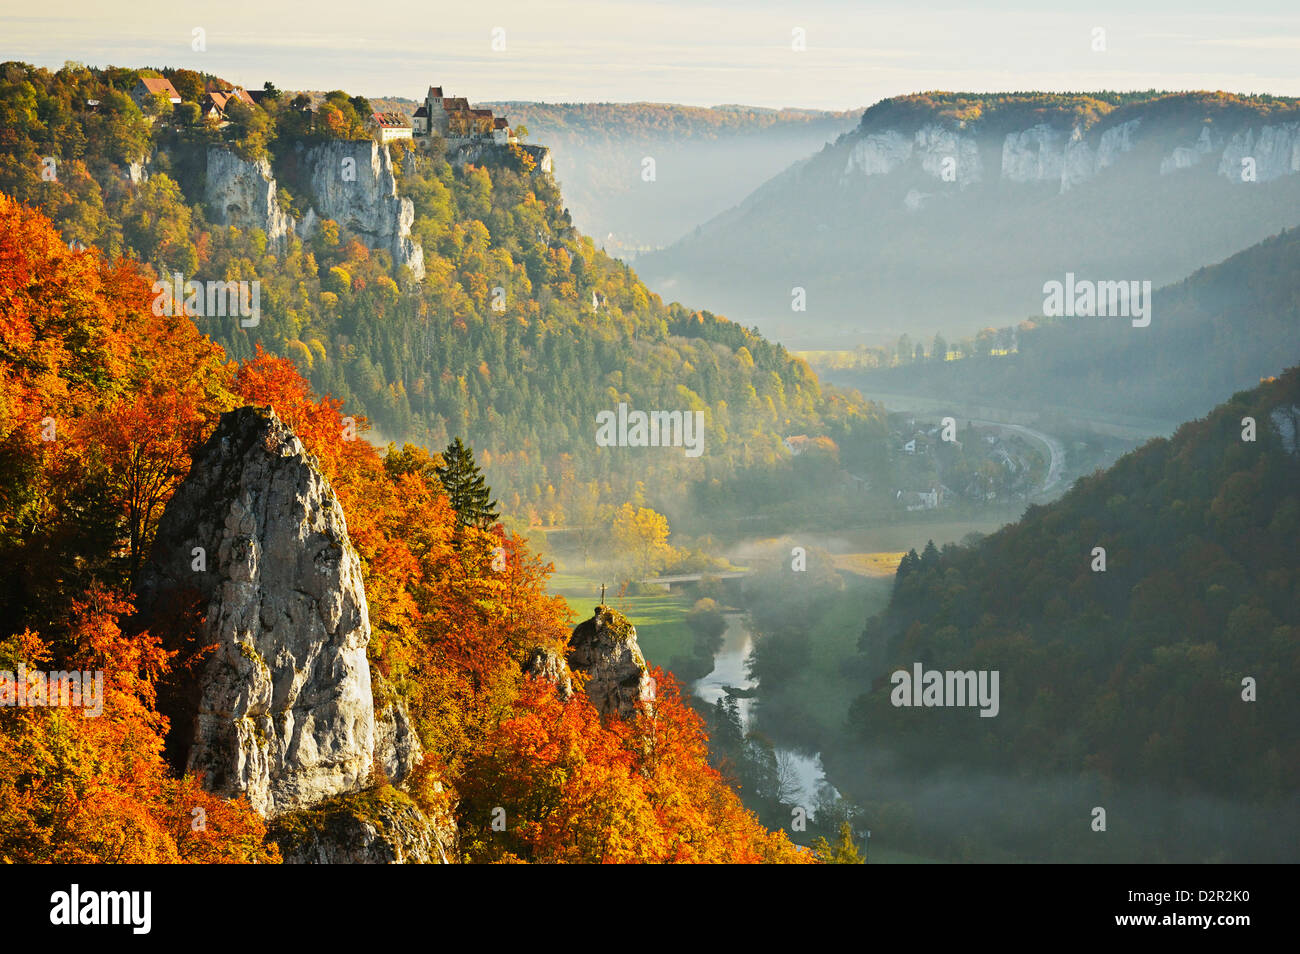 View from Eichfelsen near Irndorf of Donautal, Schaufelsen and Werenwag Castle, Swabian Alb, Baden-Wurttemberg, - Stock Image